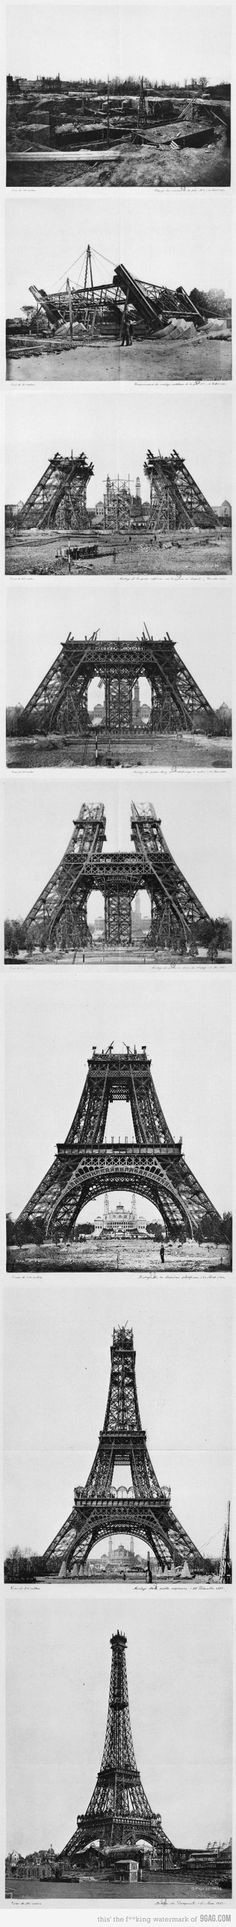 Eiffle Tower: the French have performed such feats of glory over the years... did you know the Statue of Liberty is from the French People?